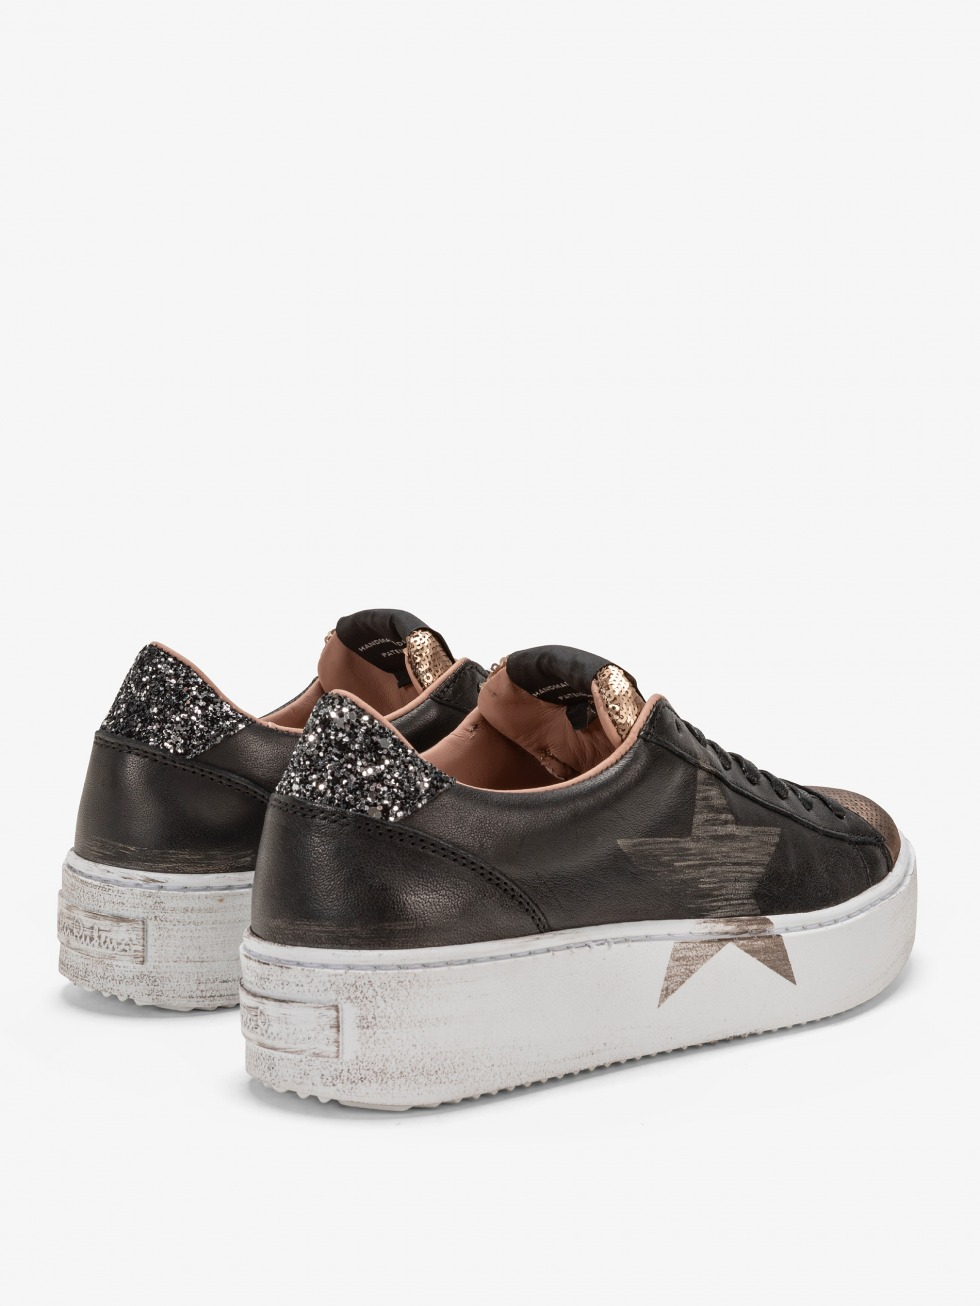 Cosmopolitan Black Sneakers - Gold Star